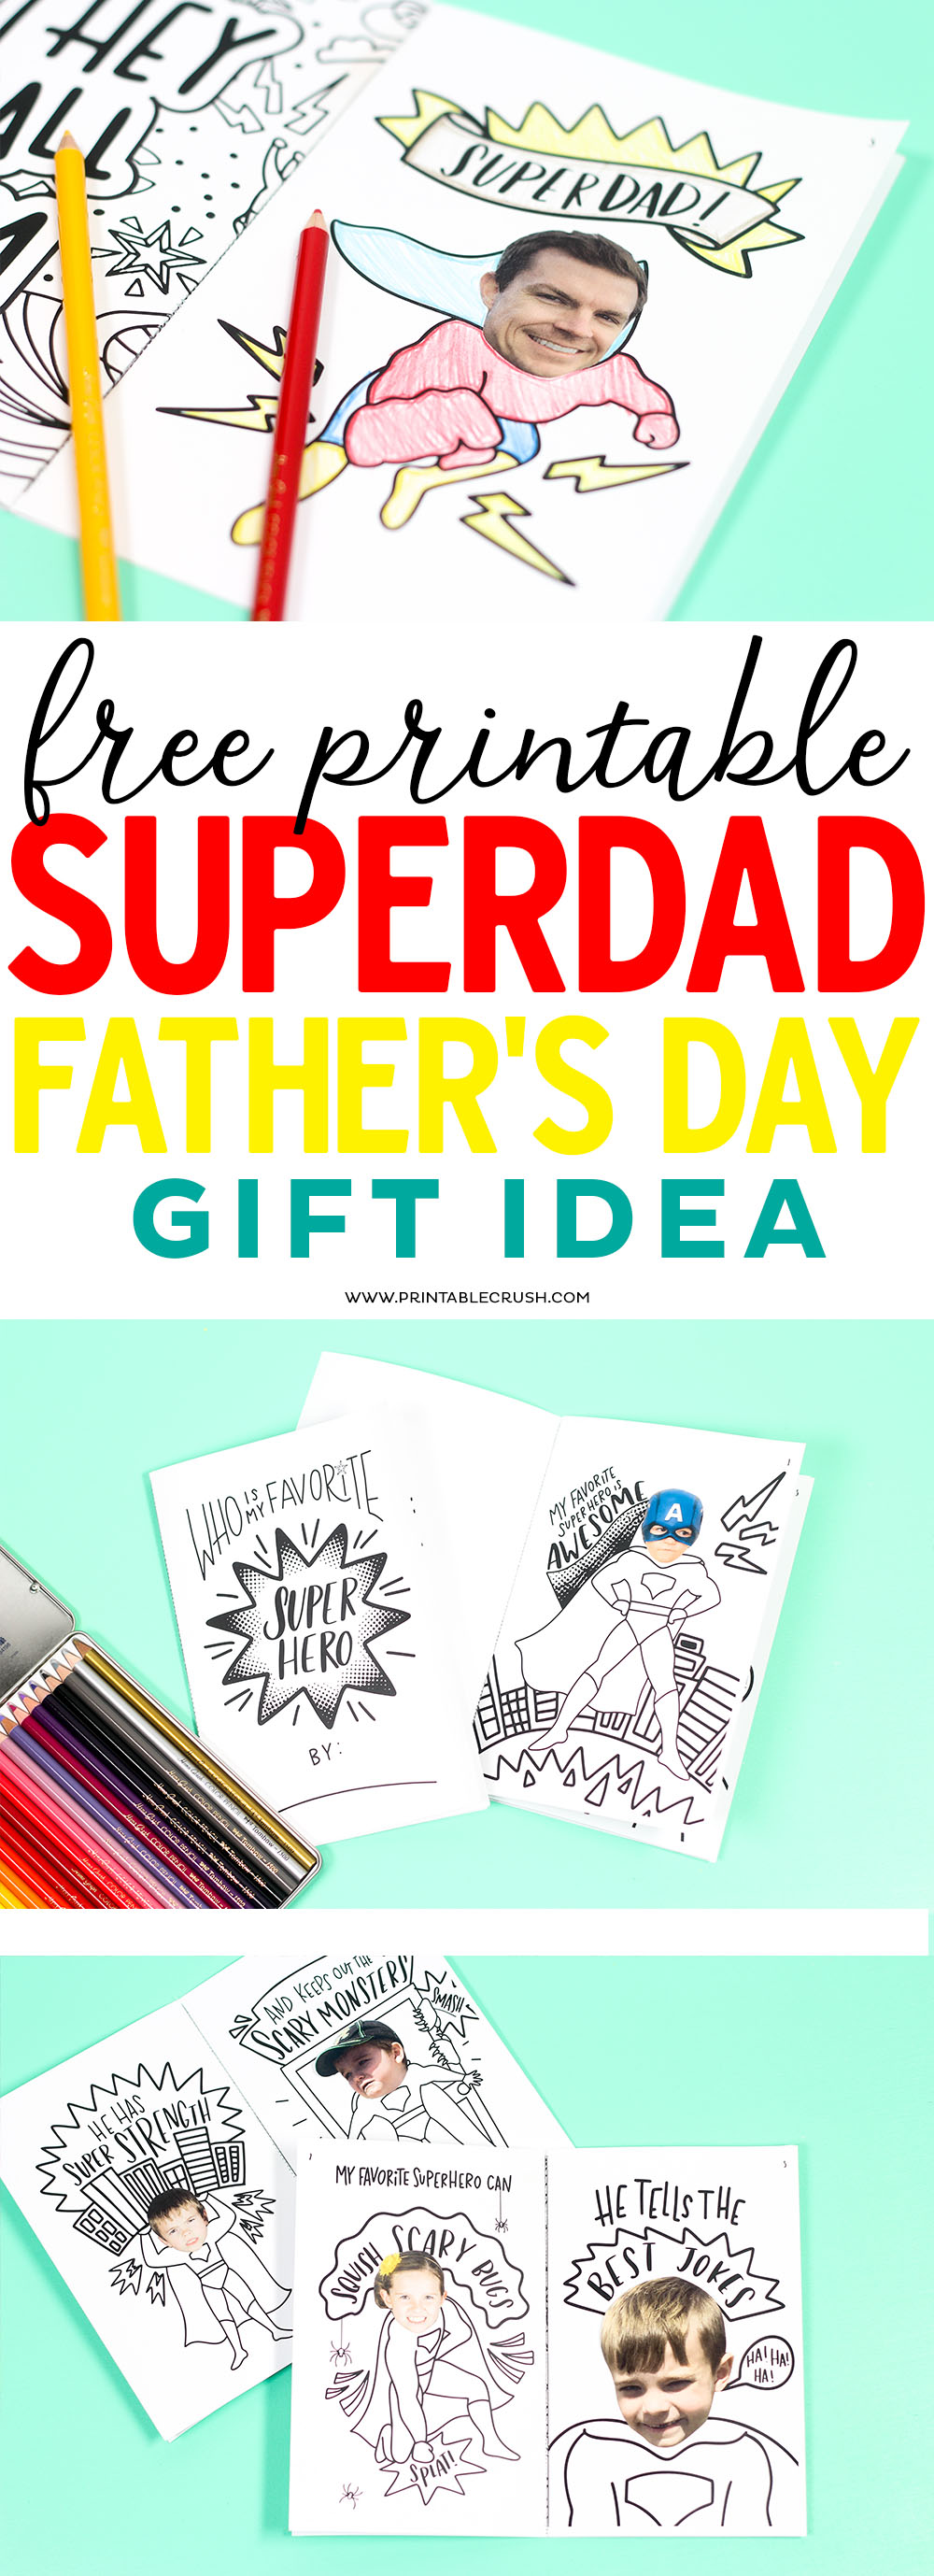 This free printable SUPERDAD father's day gift idea is a fun kids activity. Includes 8 fun coloring pages you can personalize with your own family pictures! #freeprintable #fathersday #coloringbook